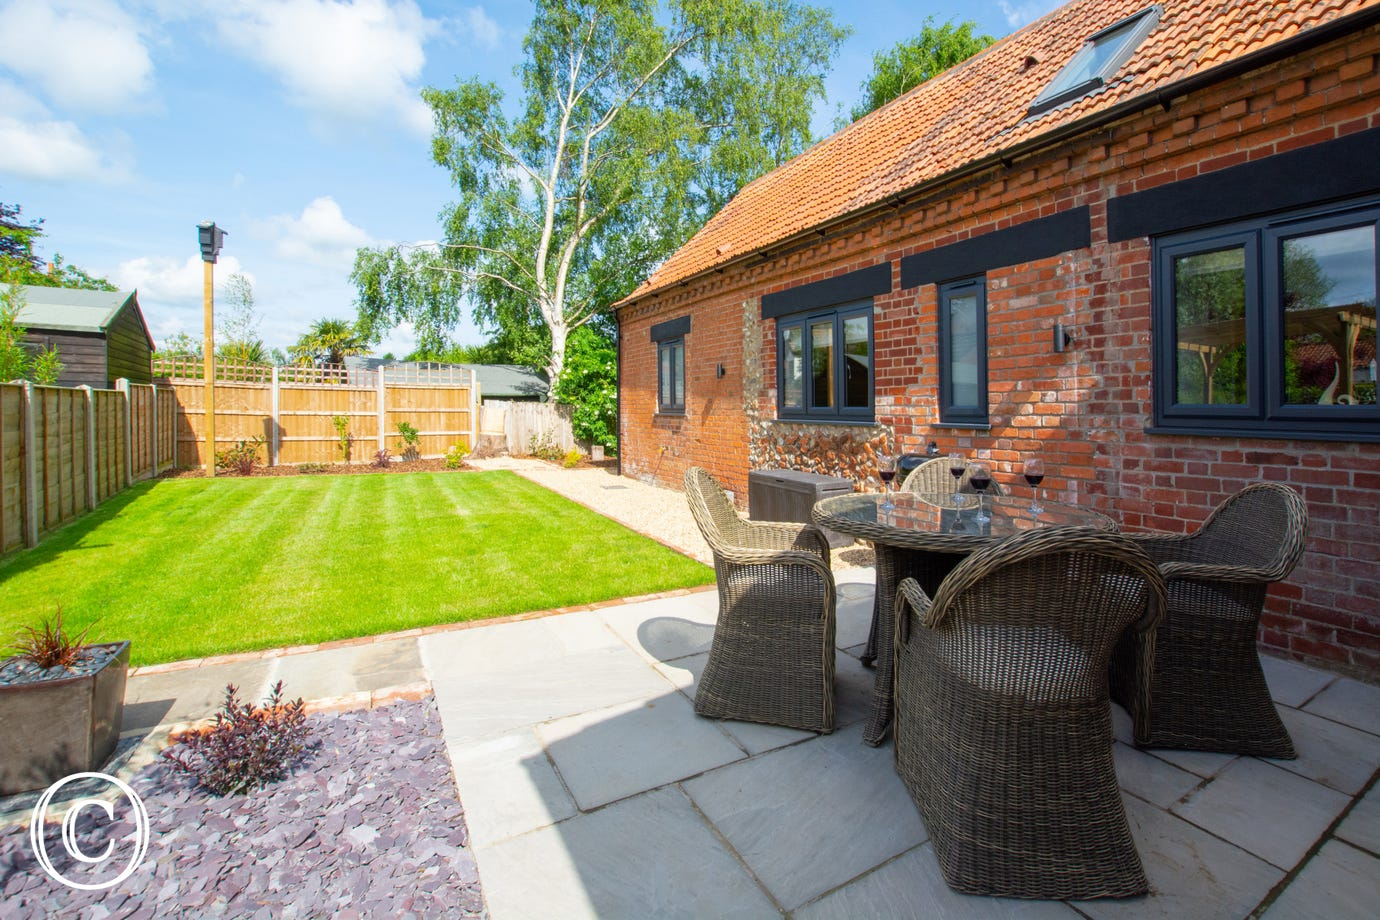 Lawn & patio area with garden furniture